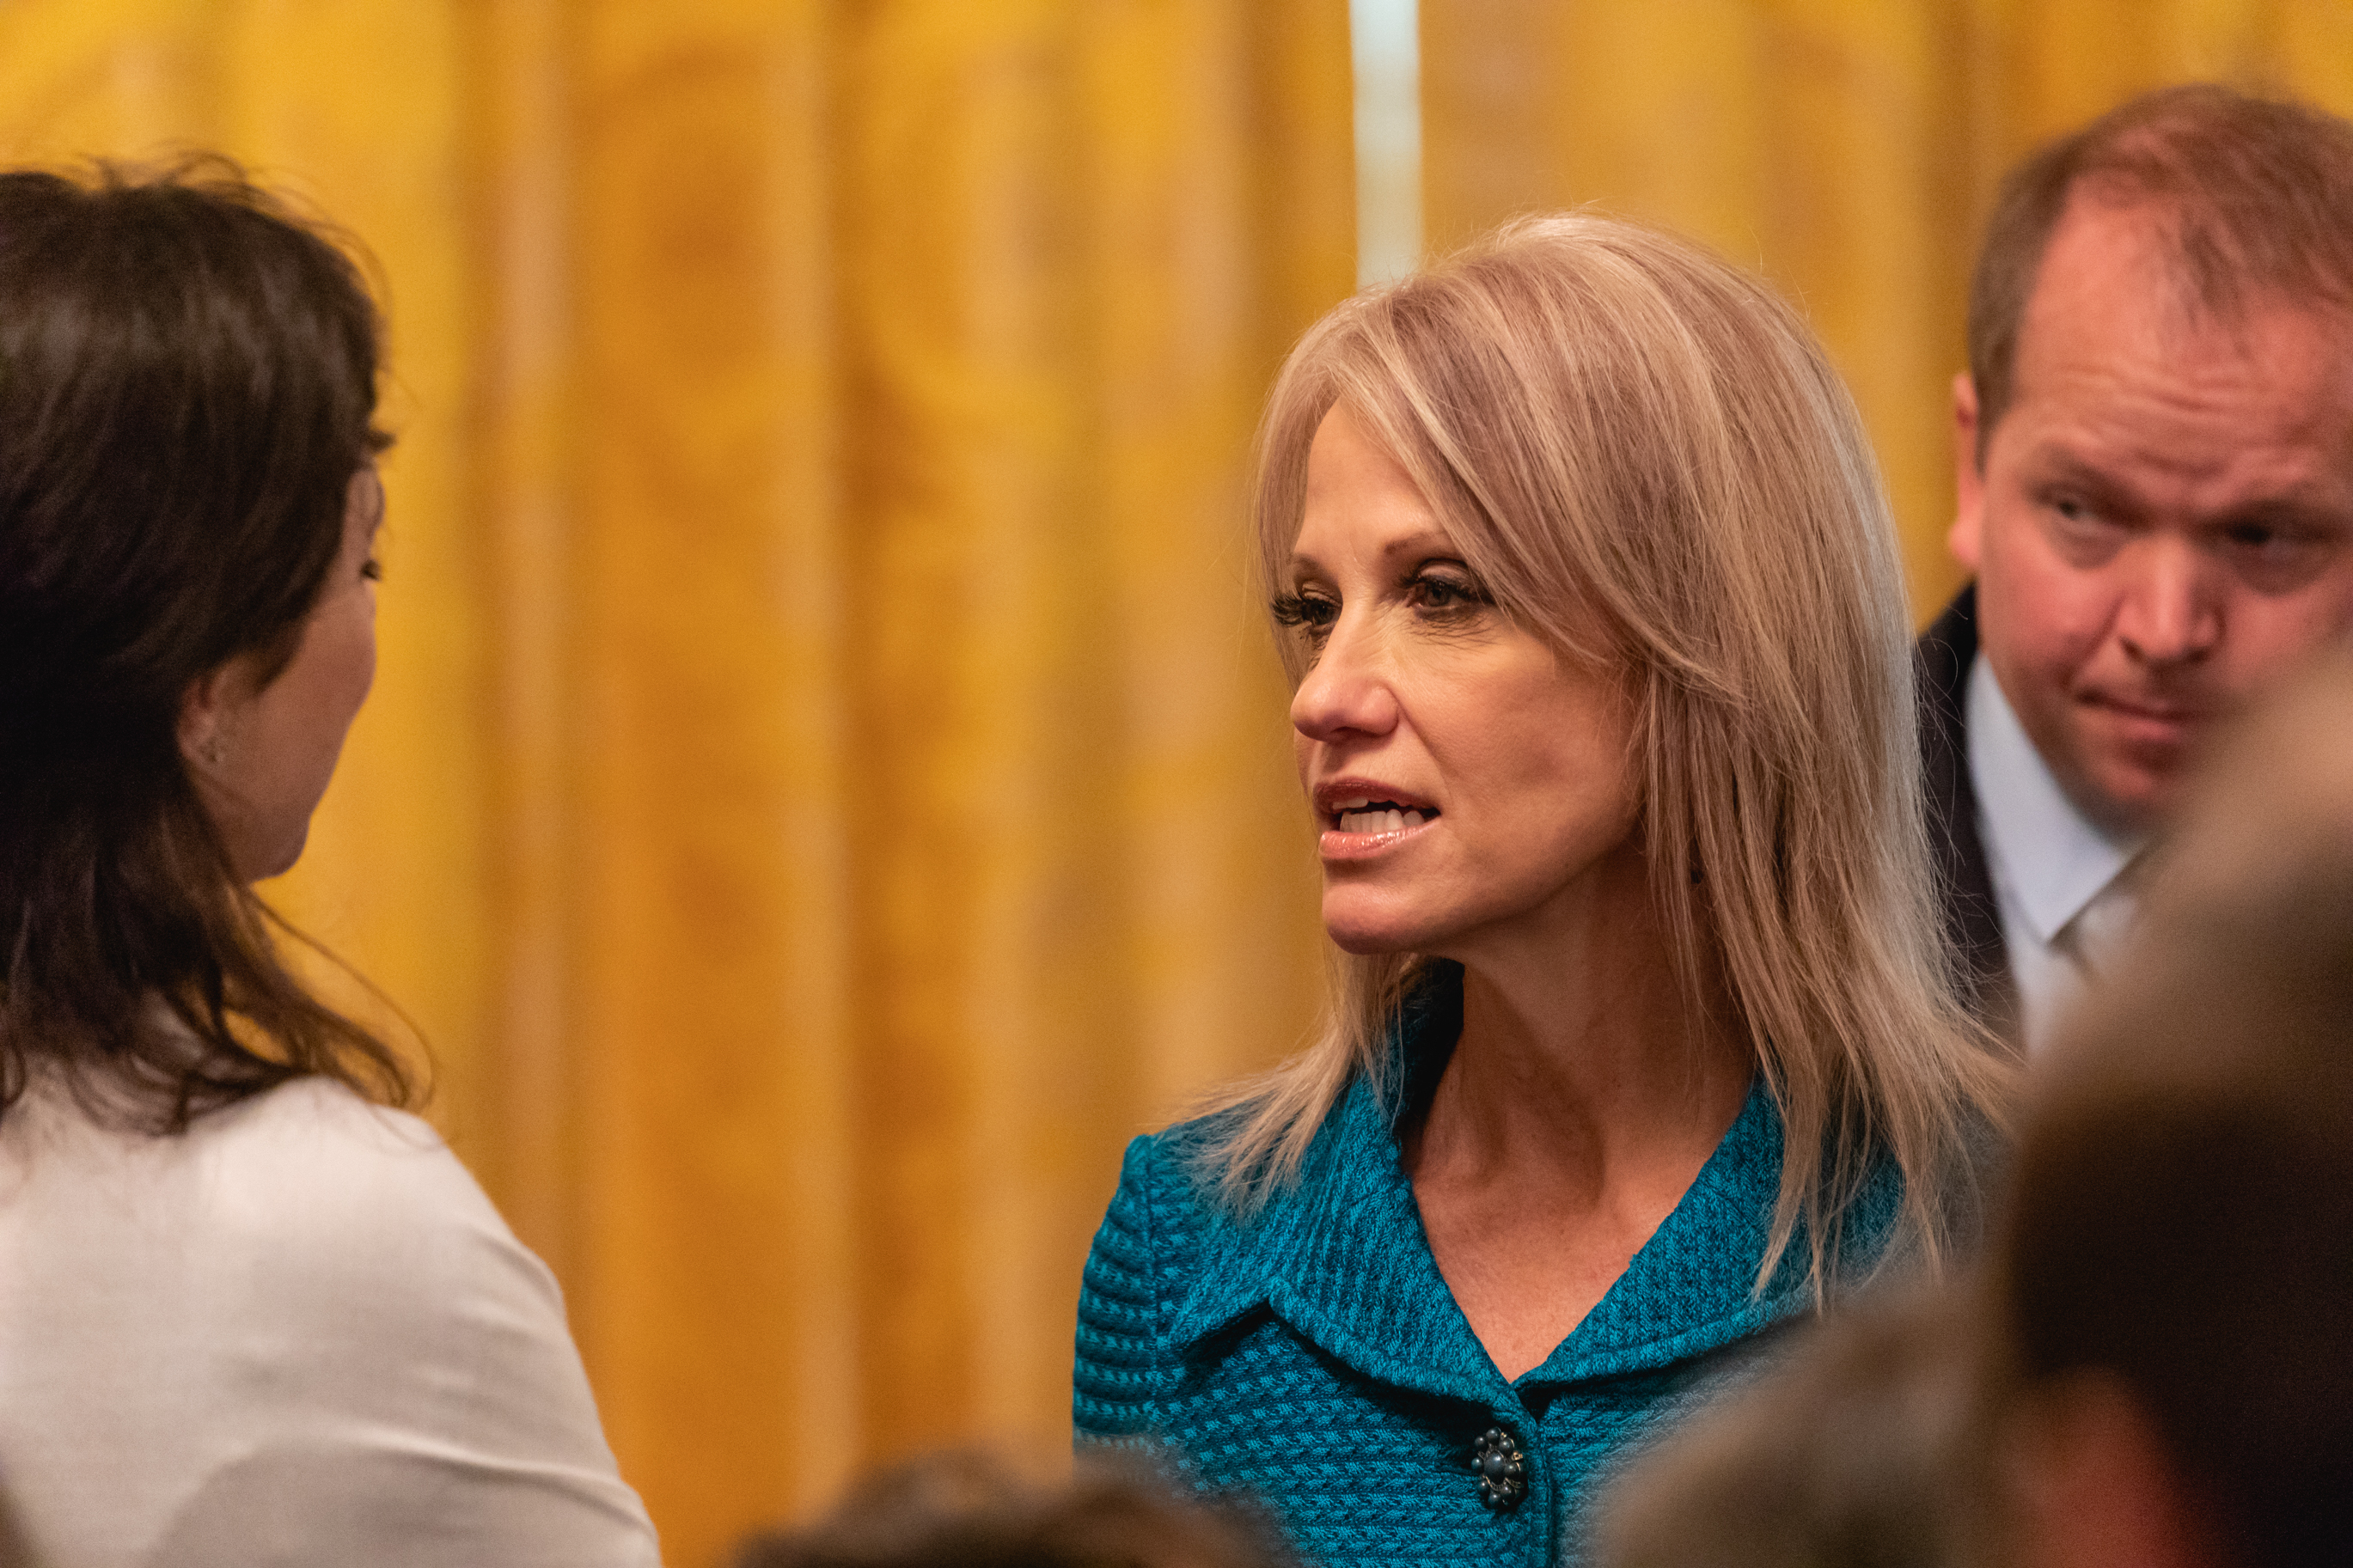 Counselor to the President Kellyanne Conway (r), attends President Trump's event celebrating the Republican tax cut plan in the East Room of the White House in Washington, D.C., on Friday, June 29, 2018. (Photo by Cheriss May/NurPhoto)